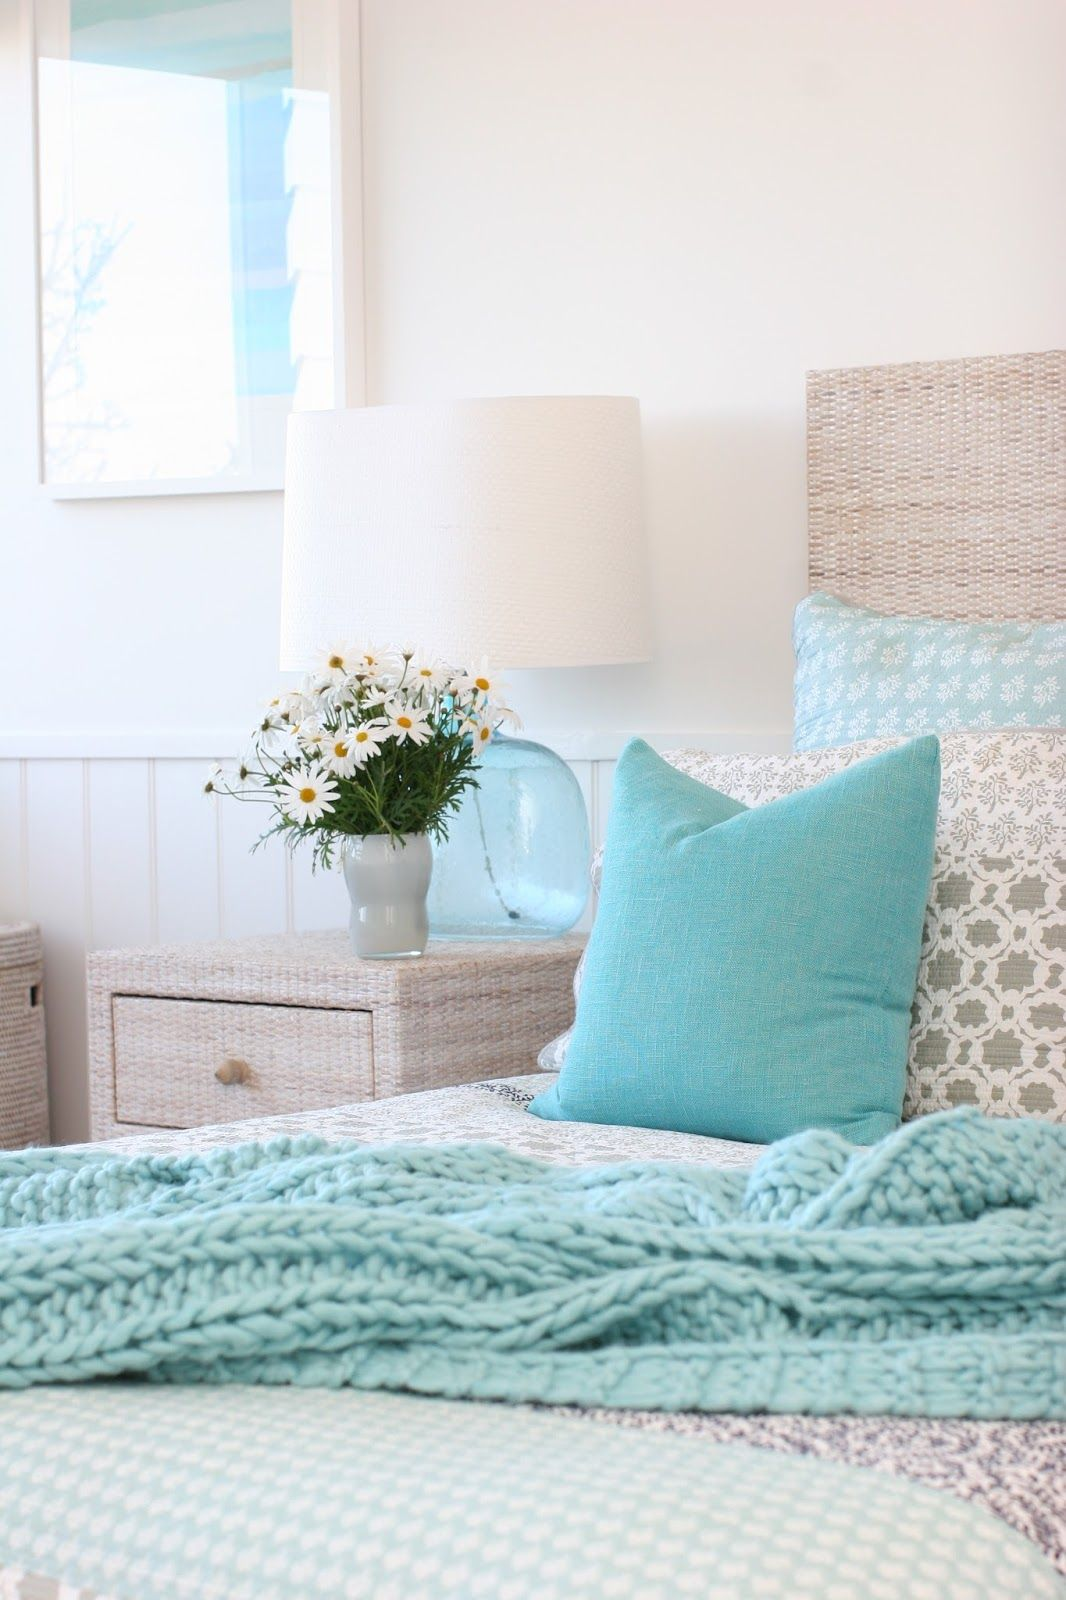 Pastel Colors Bedroom Home Decor Color Inspiration Light Aqua Blue Turquoise Pastel